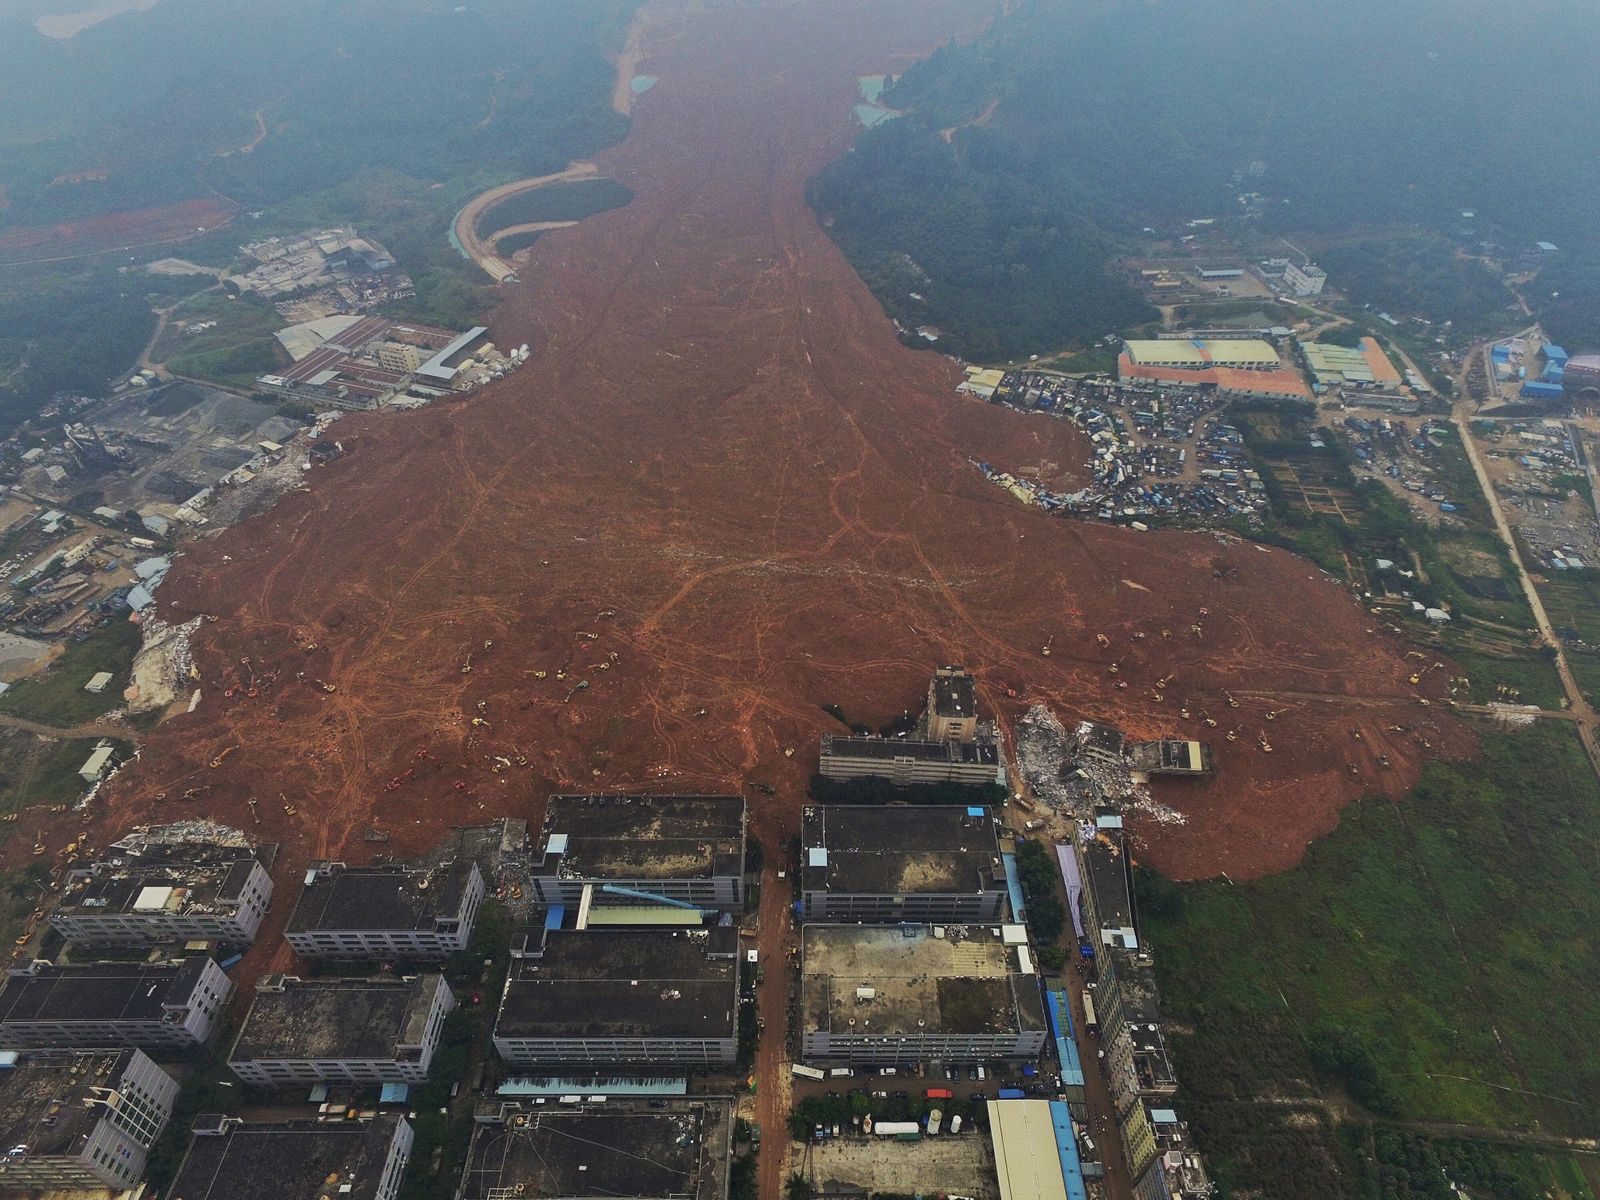 China ramps up search for survivors a day after deadly landslide